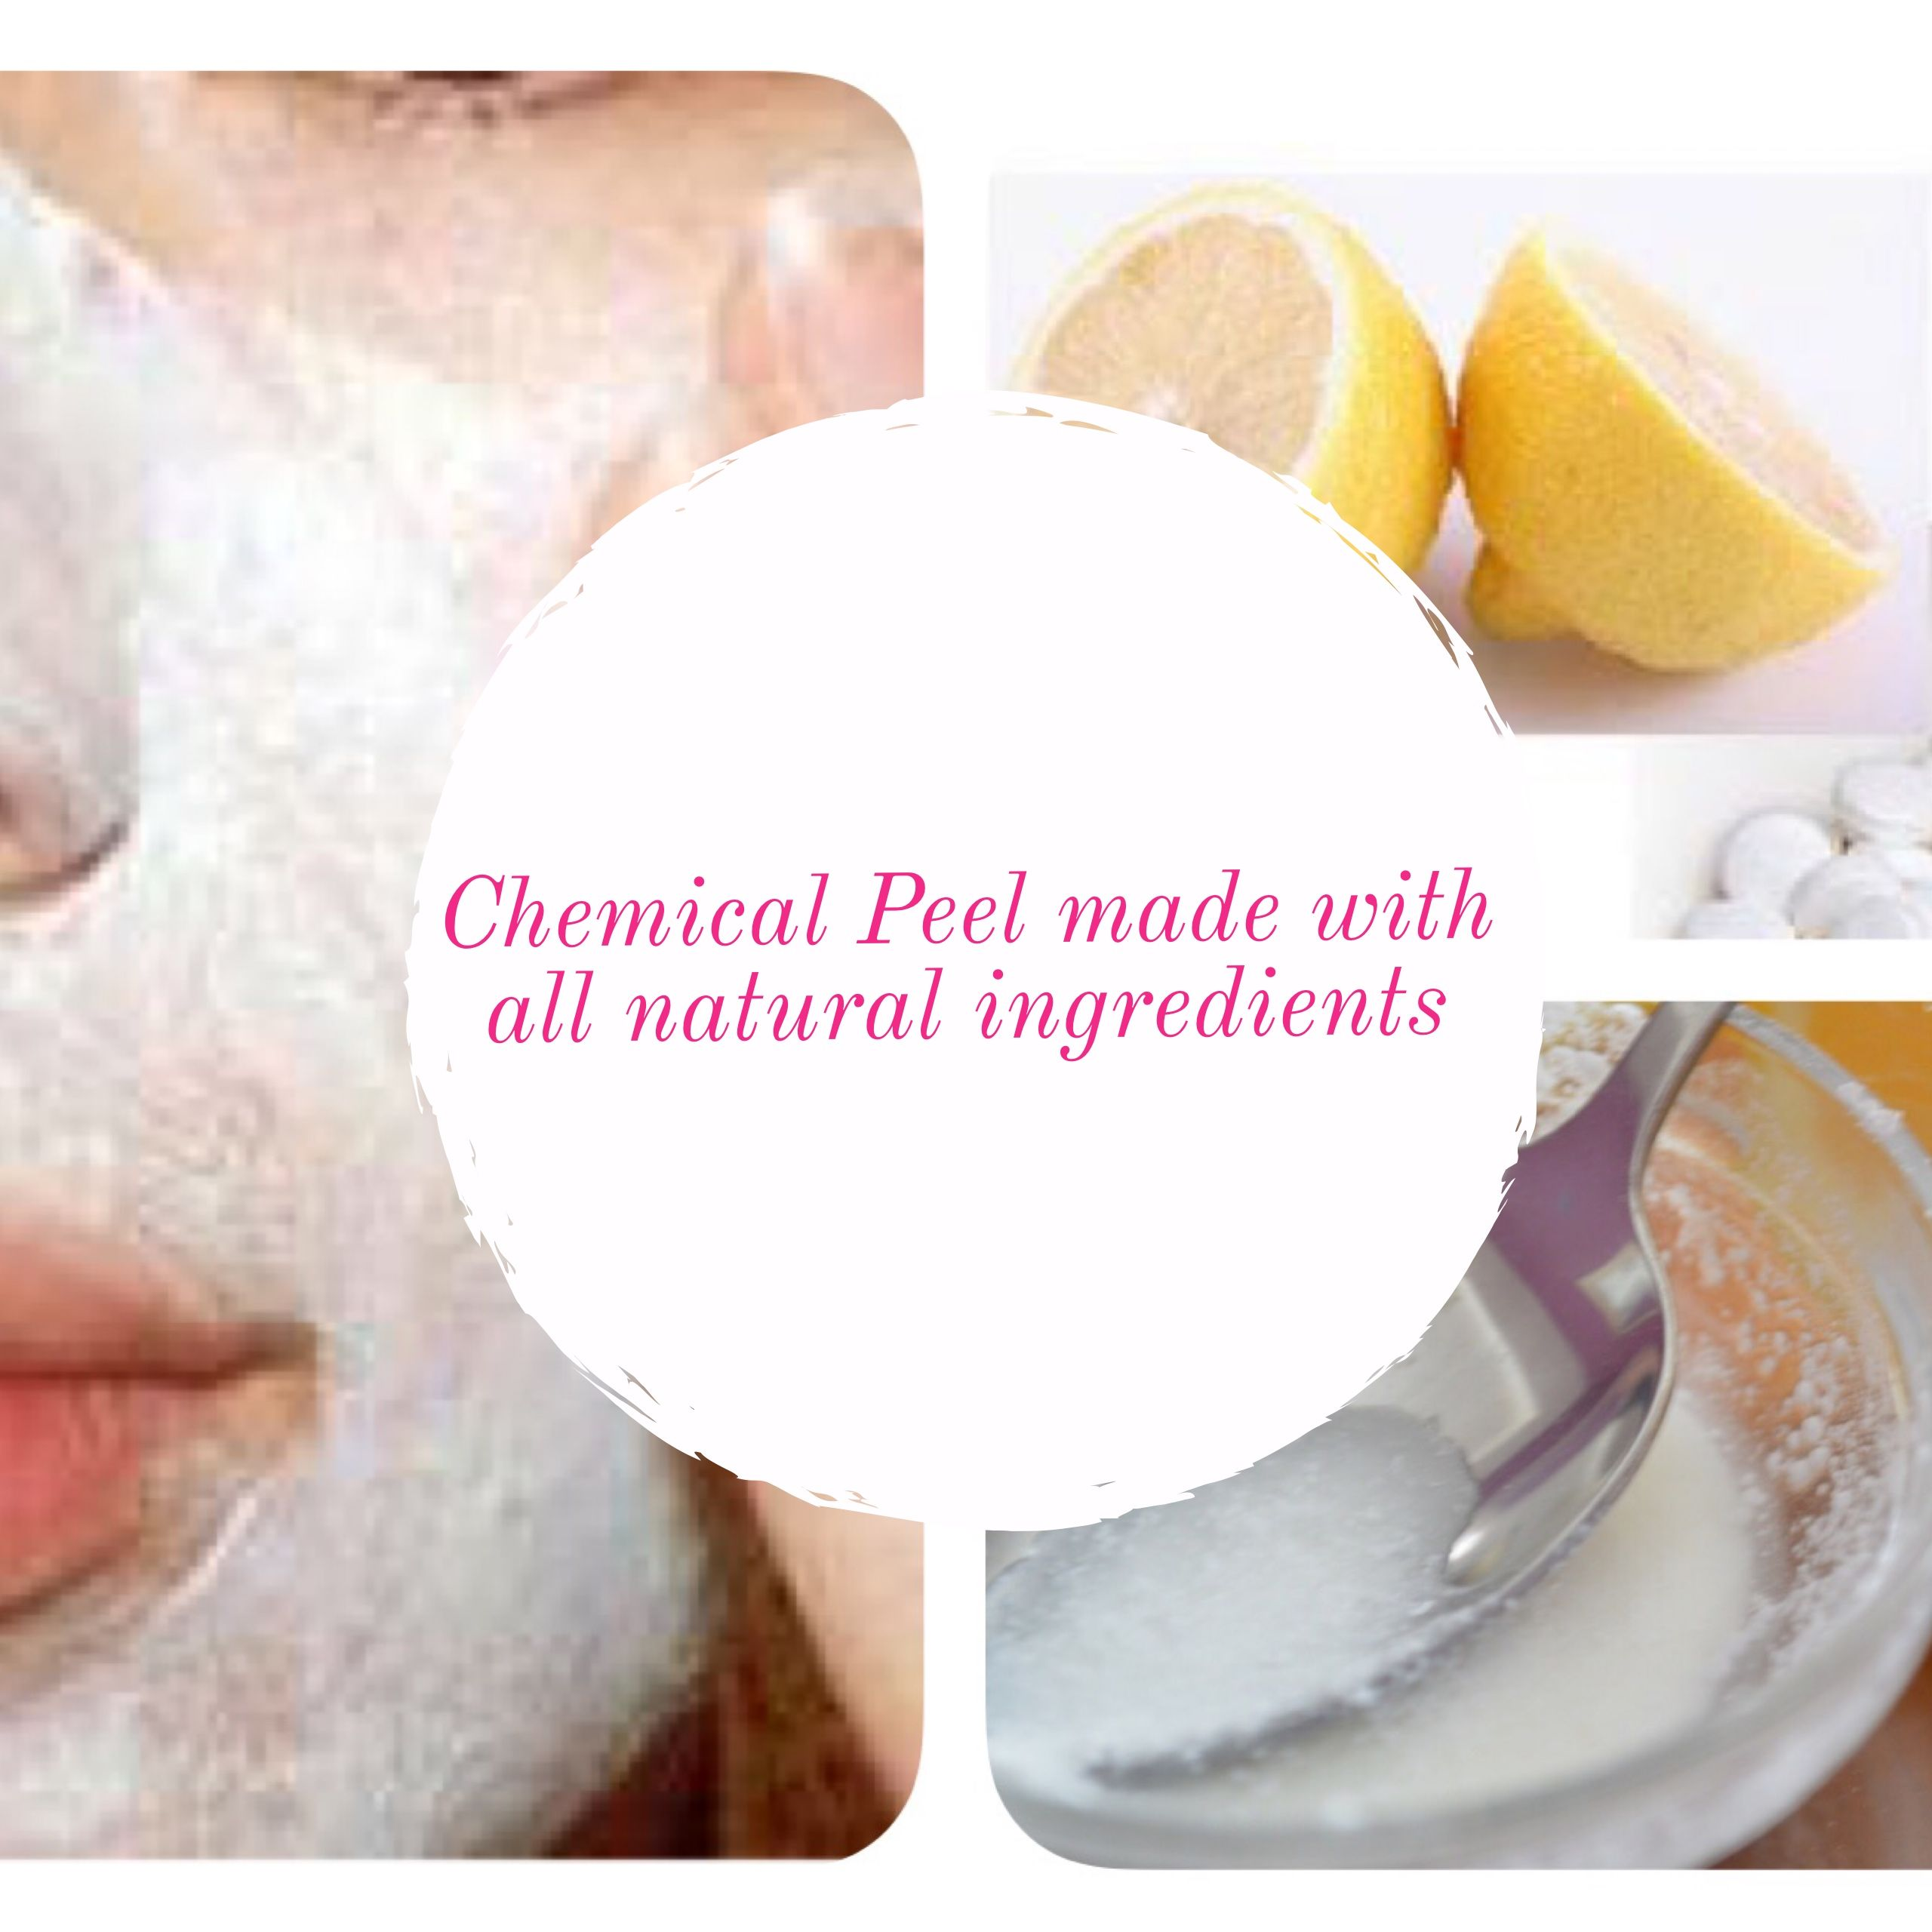 1. Mash up 6-12 non-coated aspirins and combine with freshly squeezed lemon juice. 2. Let the aspirin dissolve until it turns into a paste. 3. Apply the mask to your skin and leave it on for 10 minutes. 4. Remove the face mask by dipping a cotton round in some baking soda and some water.